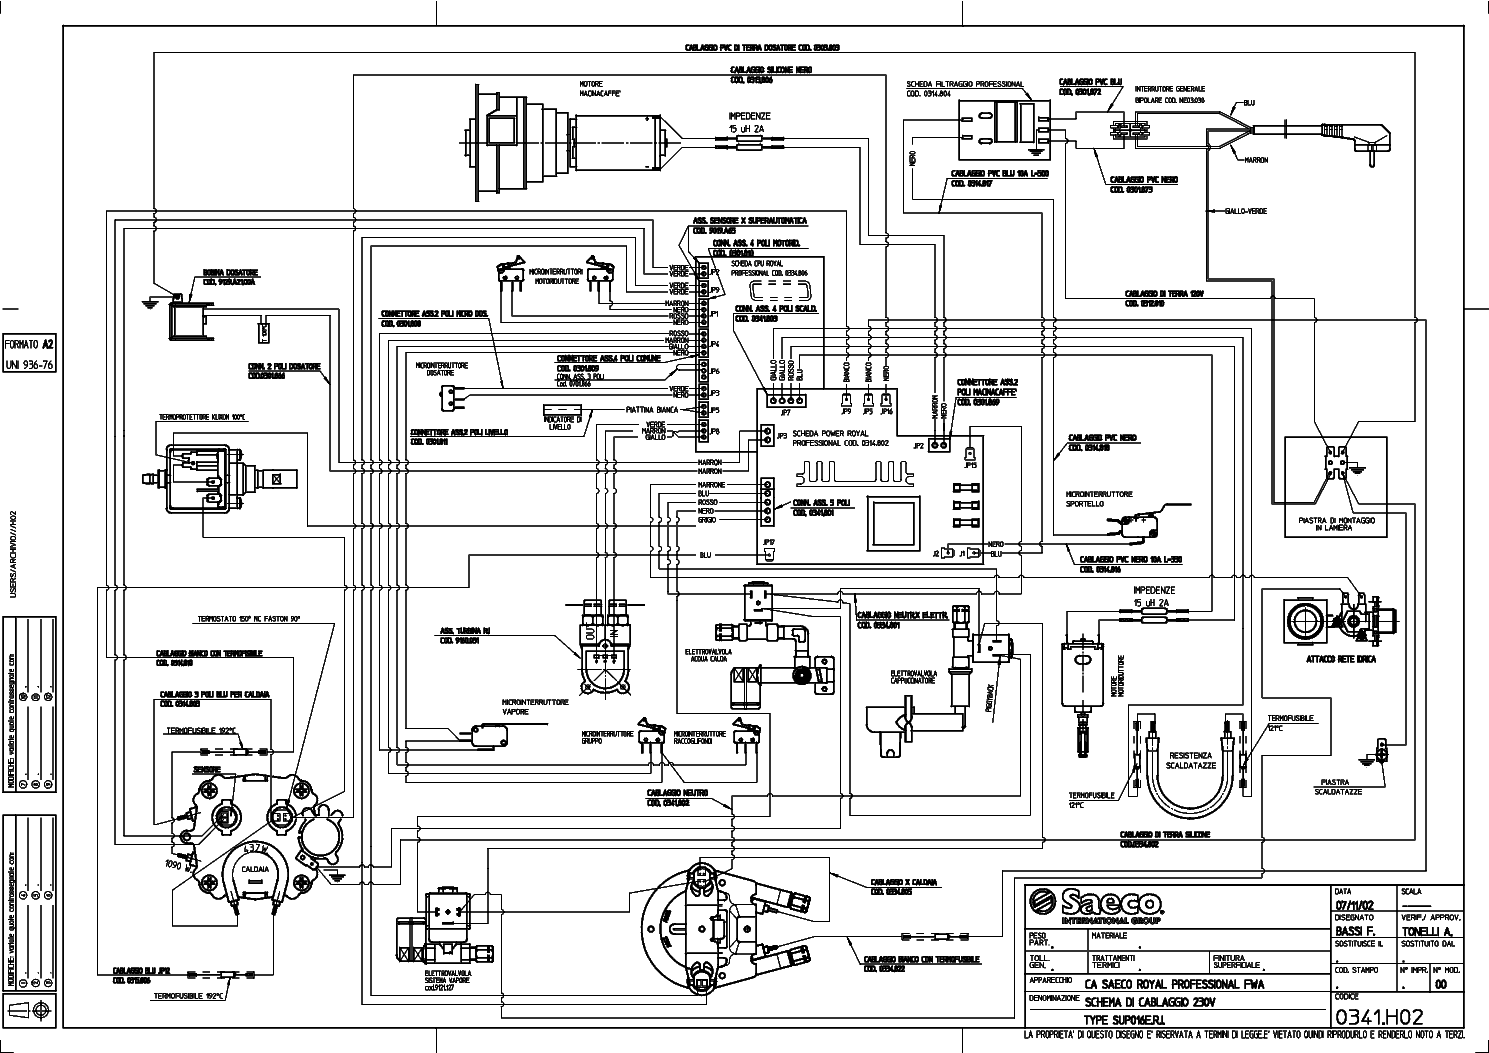 SAECO ROYAL COFFEE BAR Service Manual download, schematics